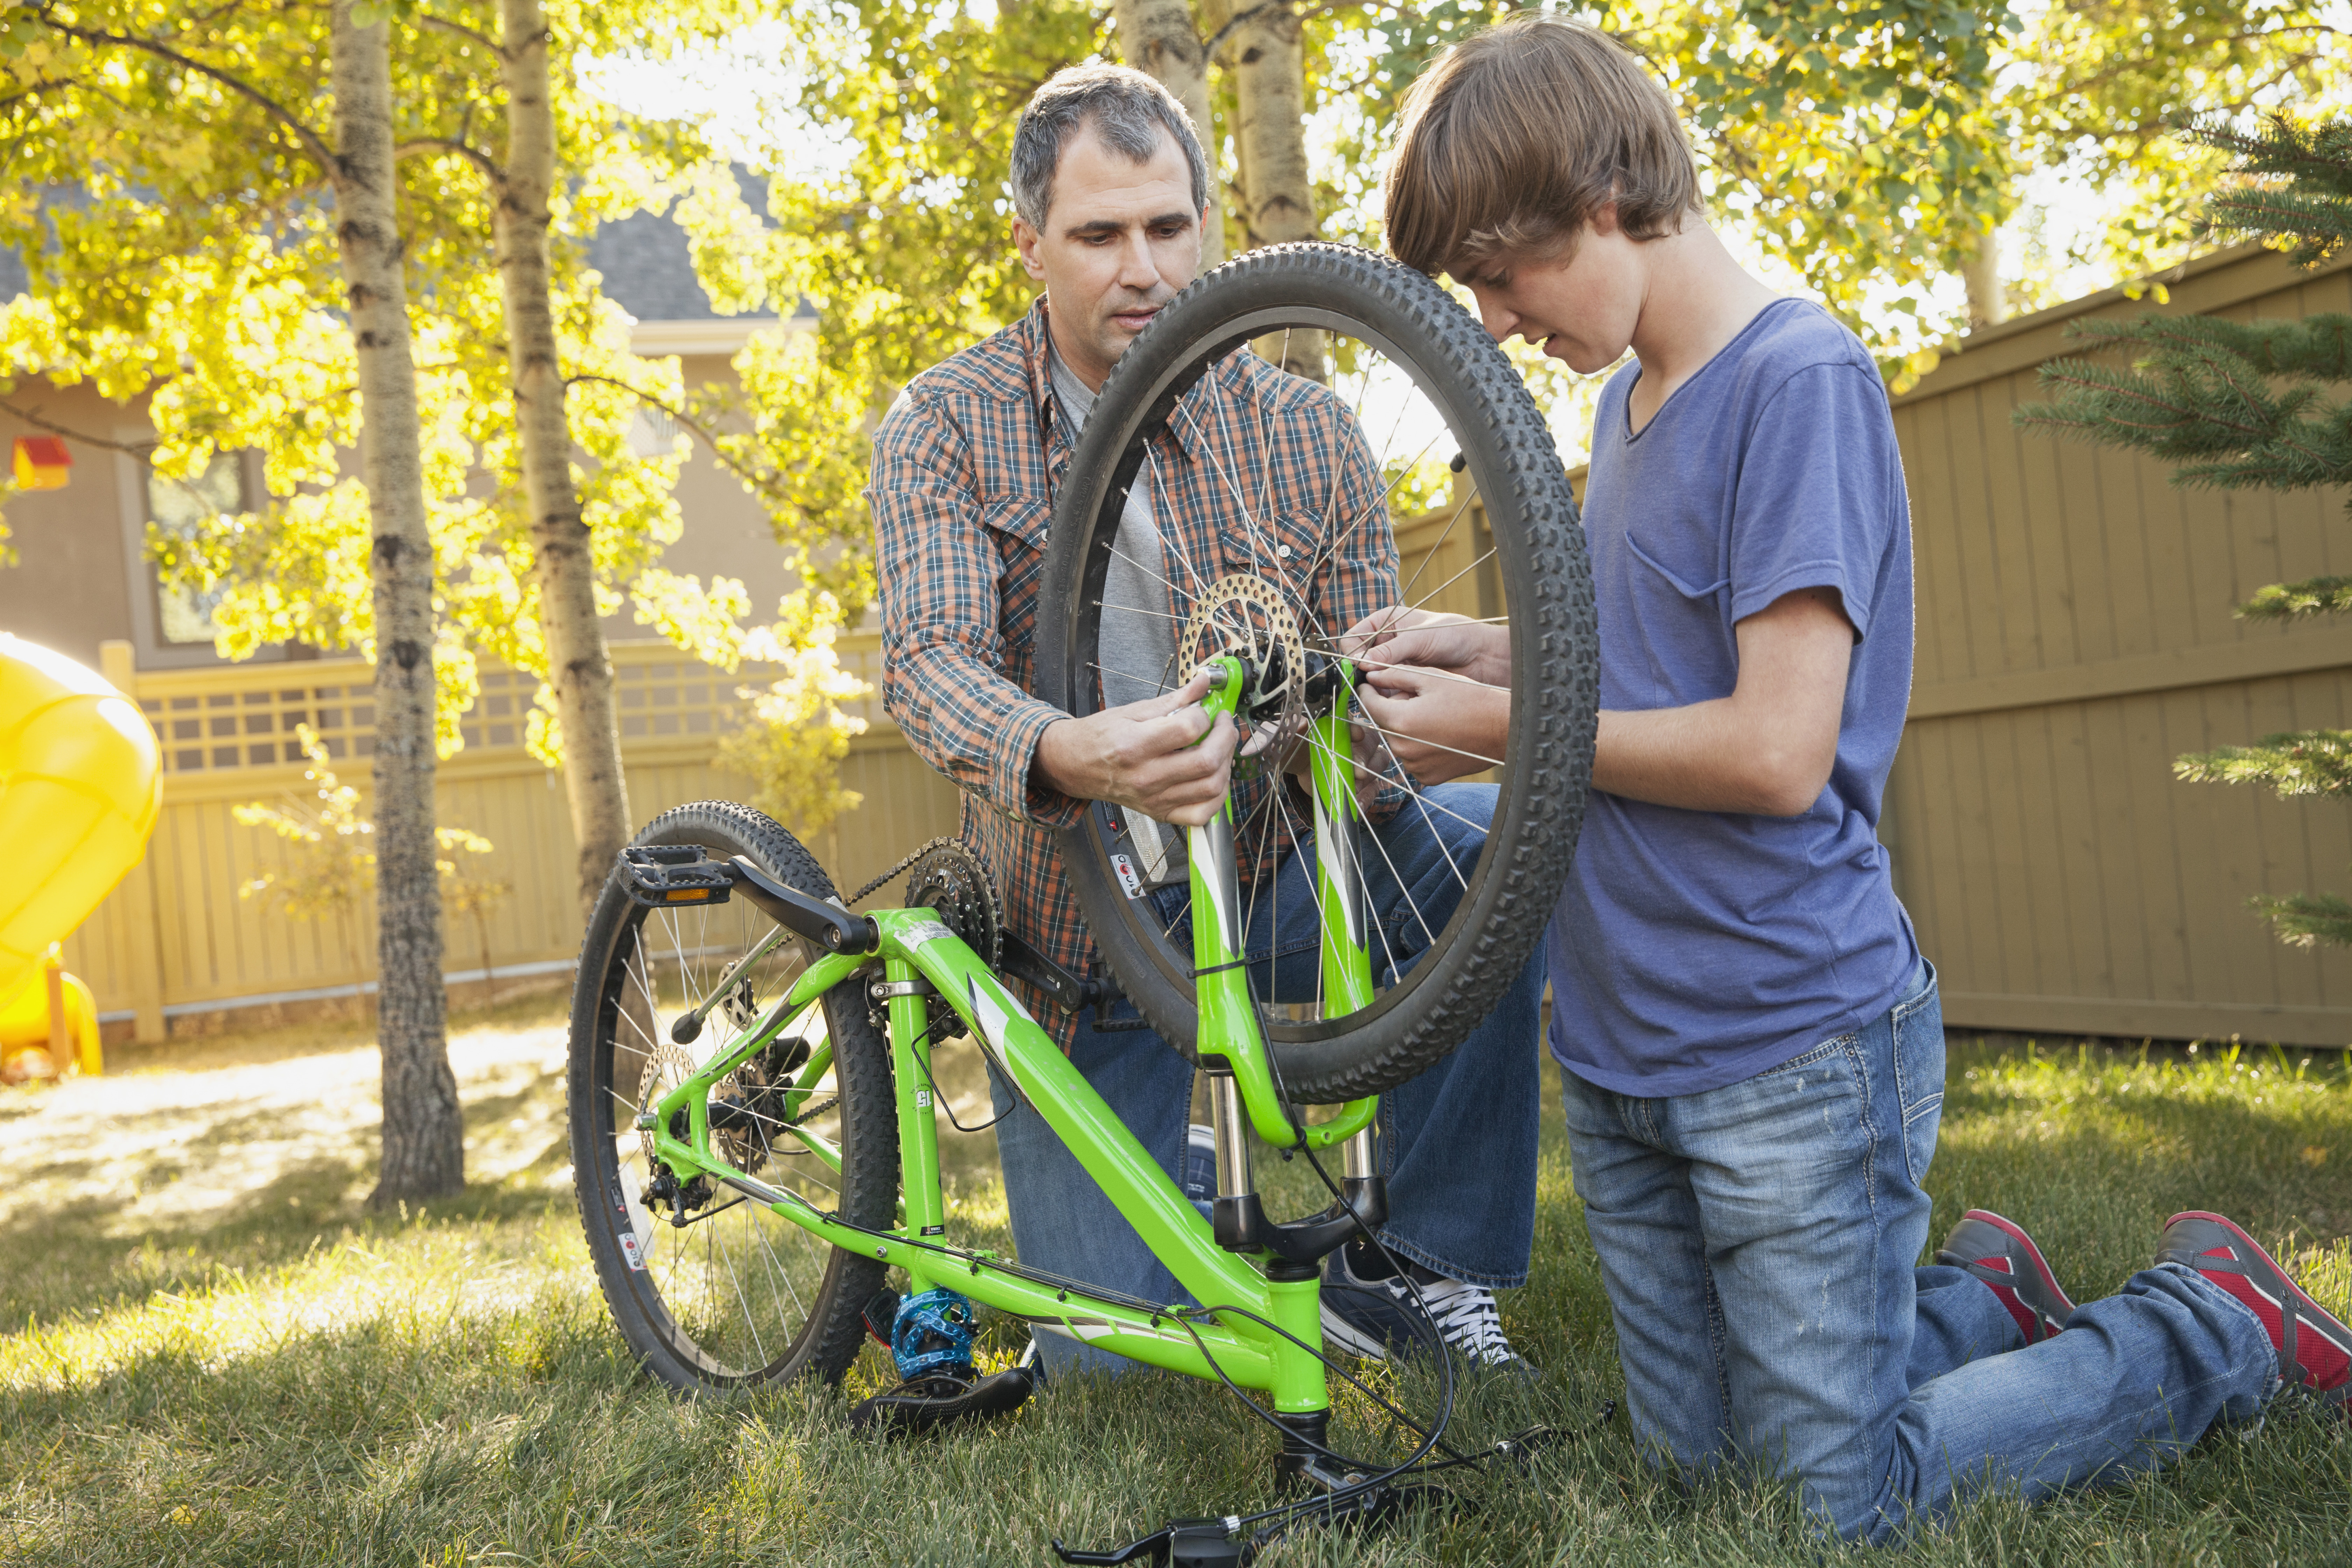 teen boy and dad working on a bike in backyard